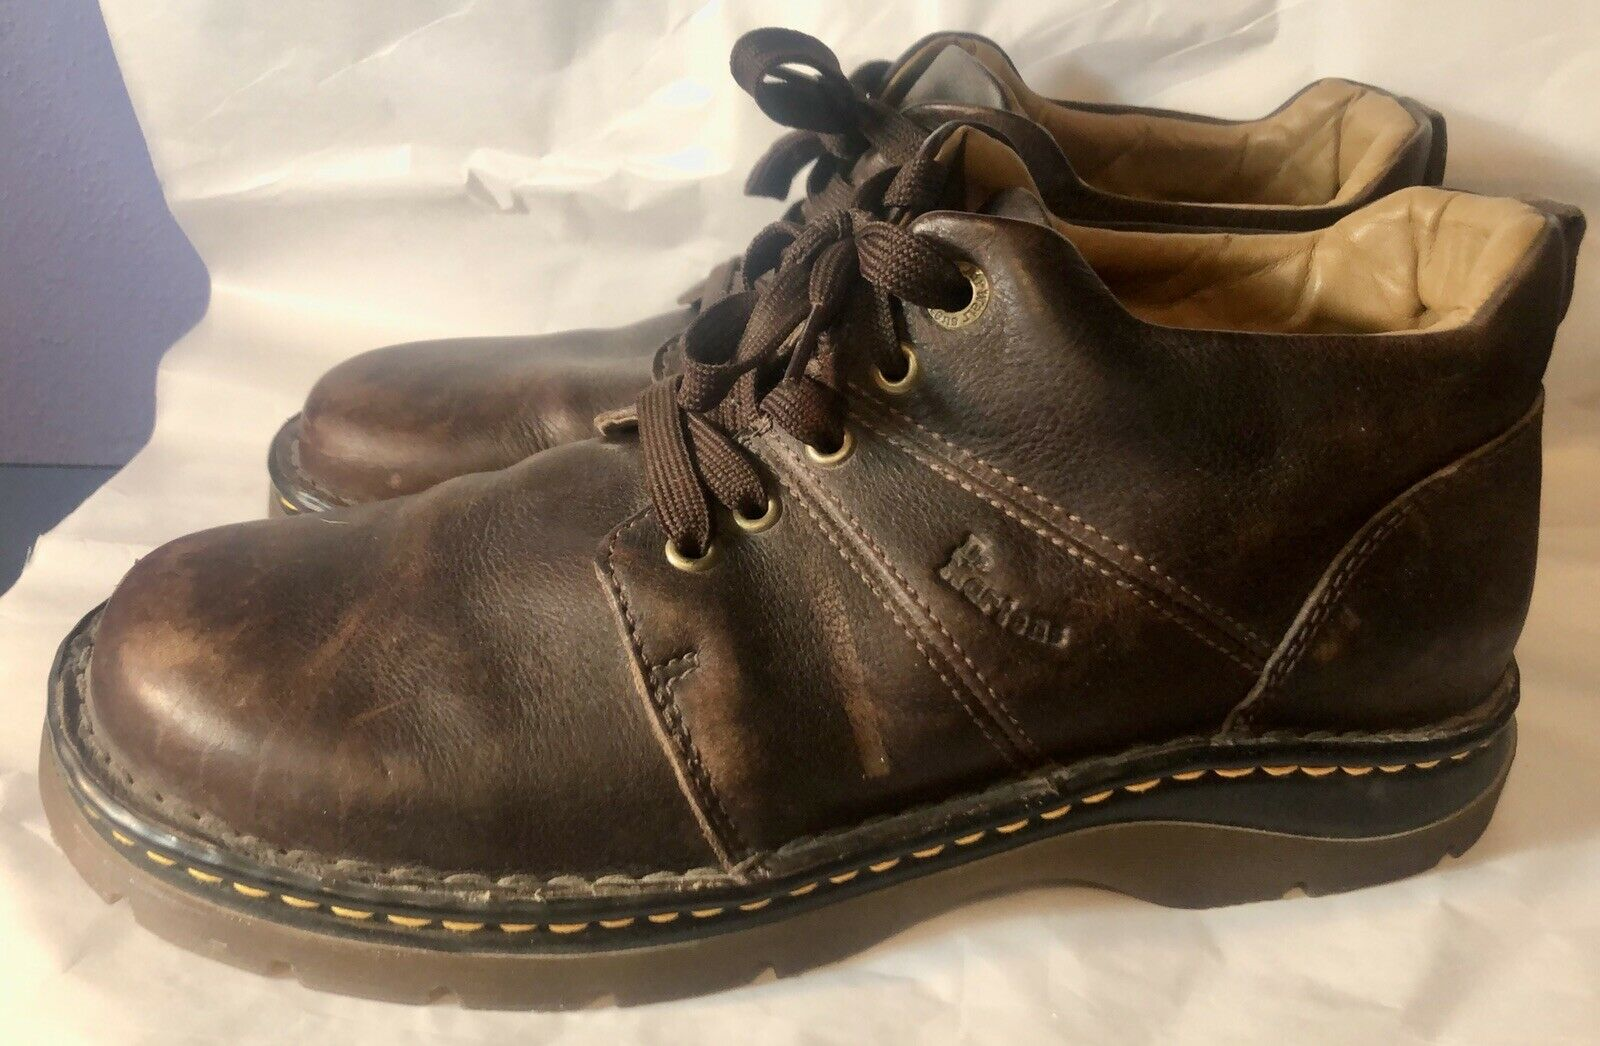 Dr Doc Marten Men's 5 Eye Brown Leather Shoes Oxford Low Boot 10M Distressed